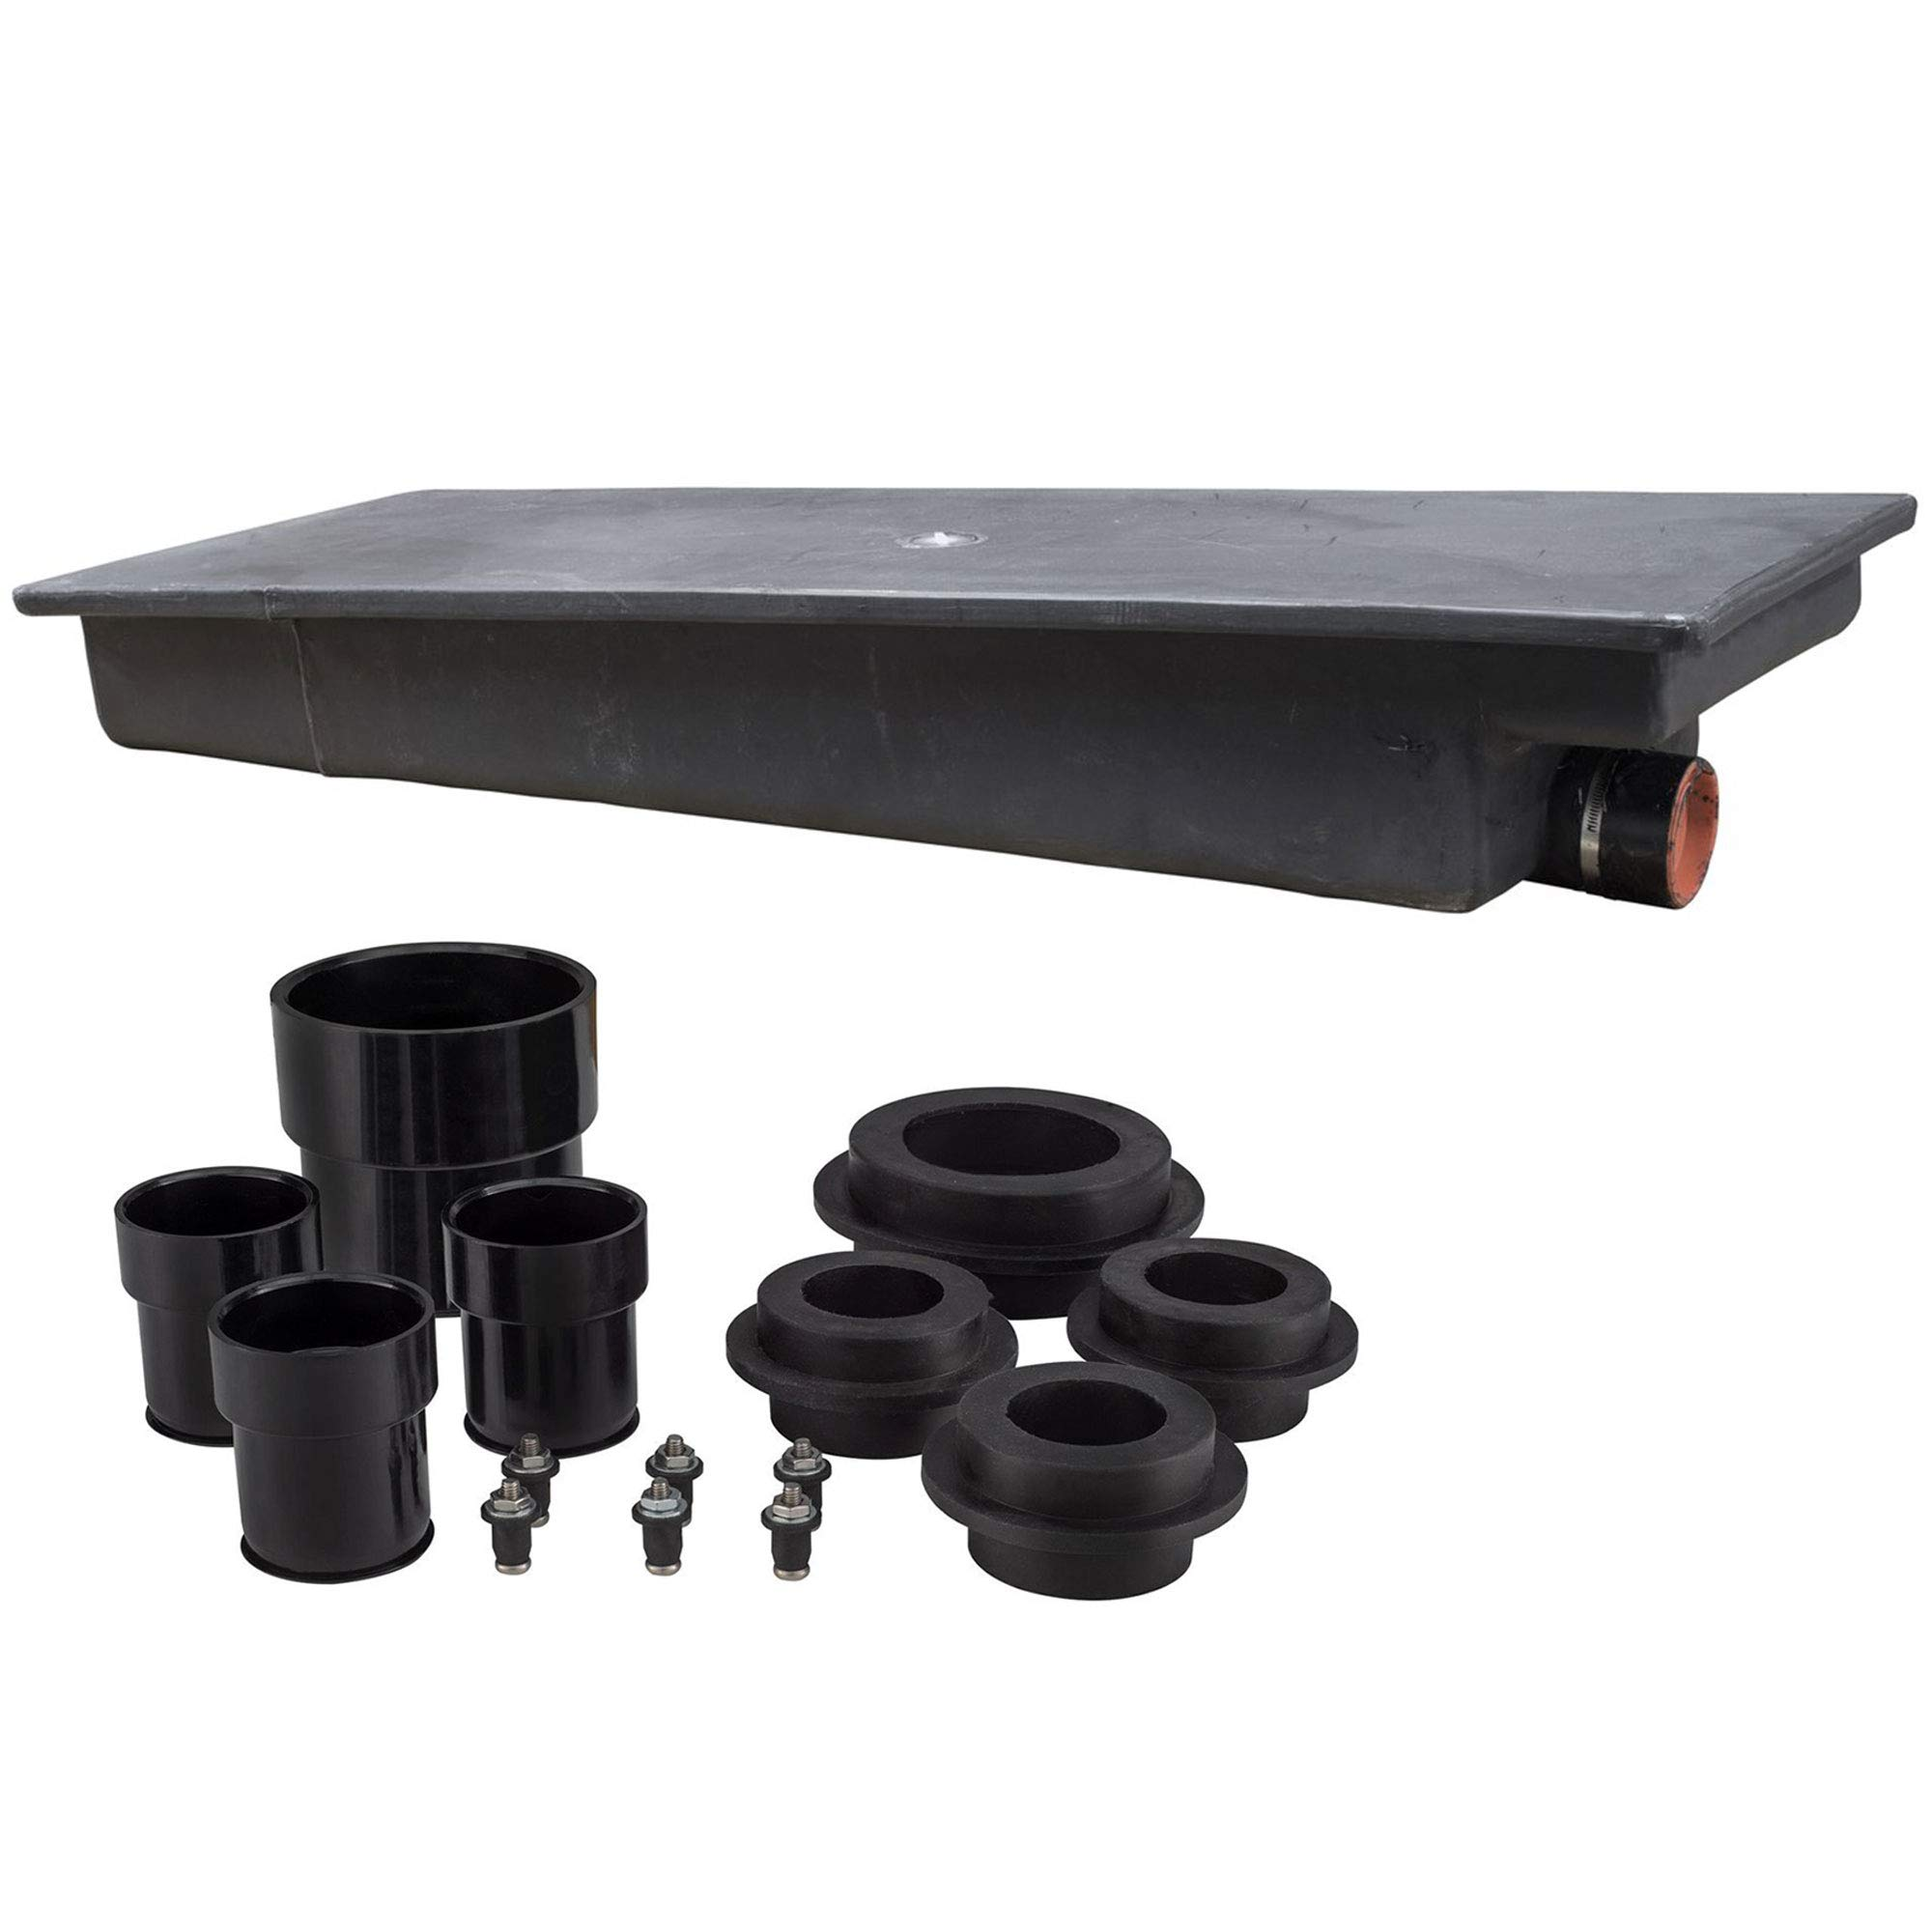 RecPro 25 Gallon RV Holding Tank 53'' x 20'' x 8'' | Black Waste Water | 1138 | Includes Universal Installation Fittings Kit